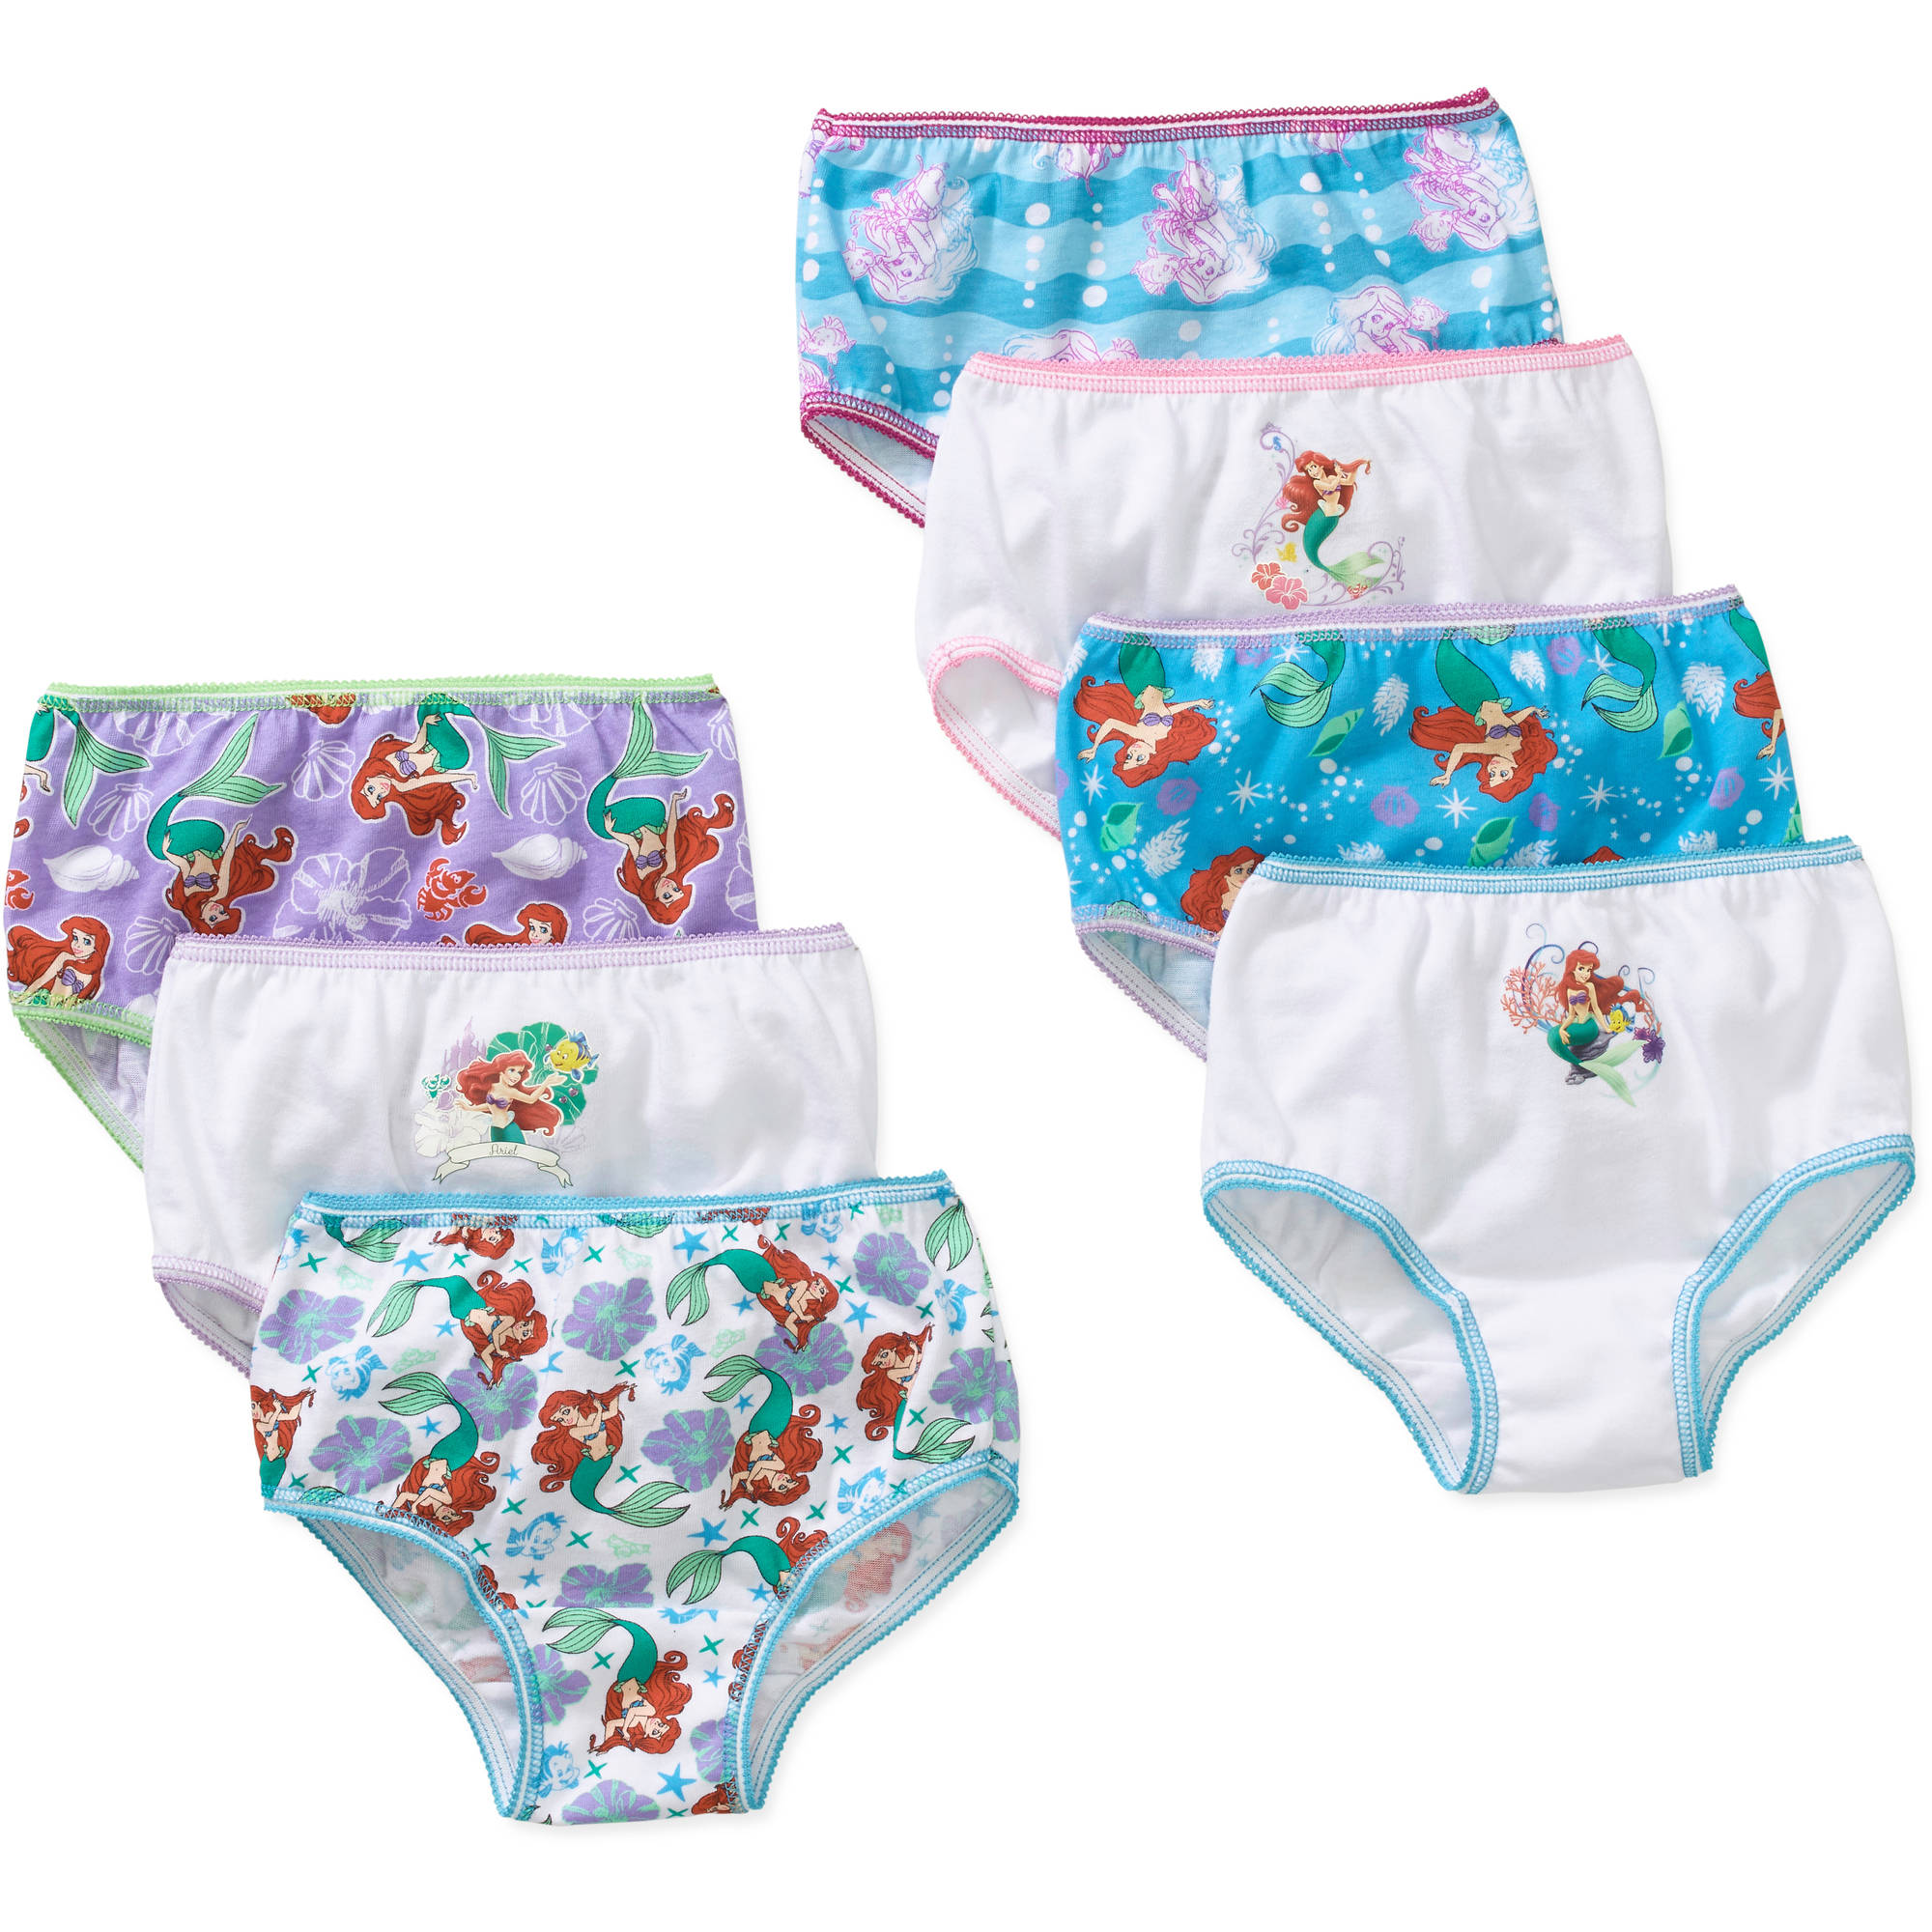 Disney Little Mermaid Ariel Toddler Girls Underwear 7 Pack